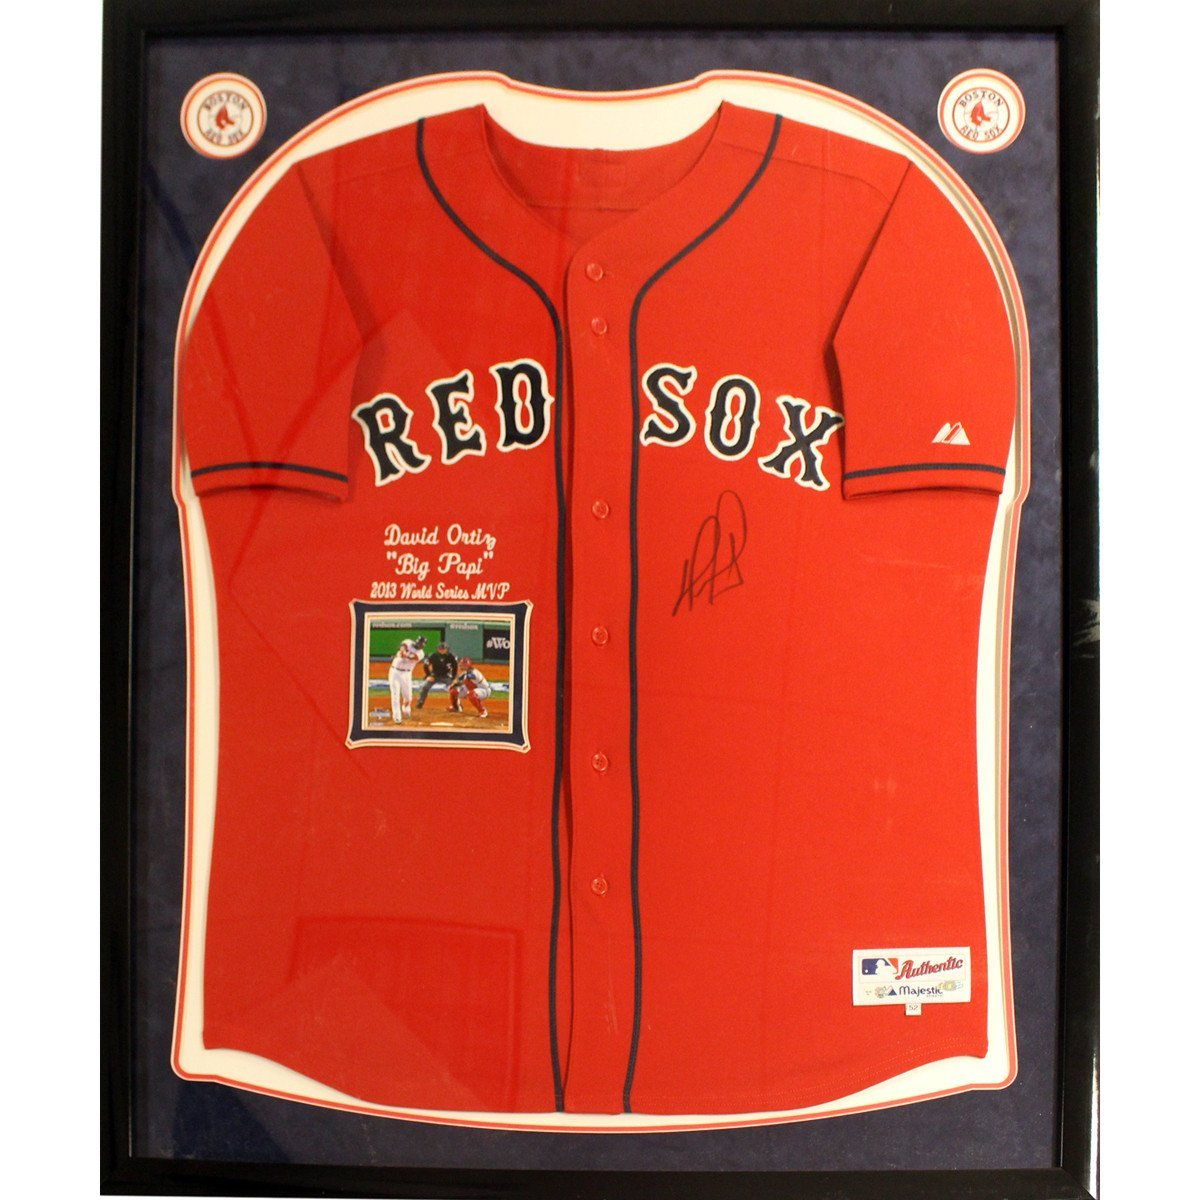 David Ortiz Elite Framed Signed Authentic Red Sox Alternate Jersey